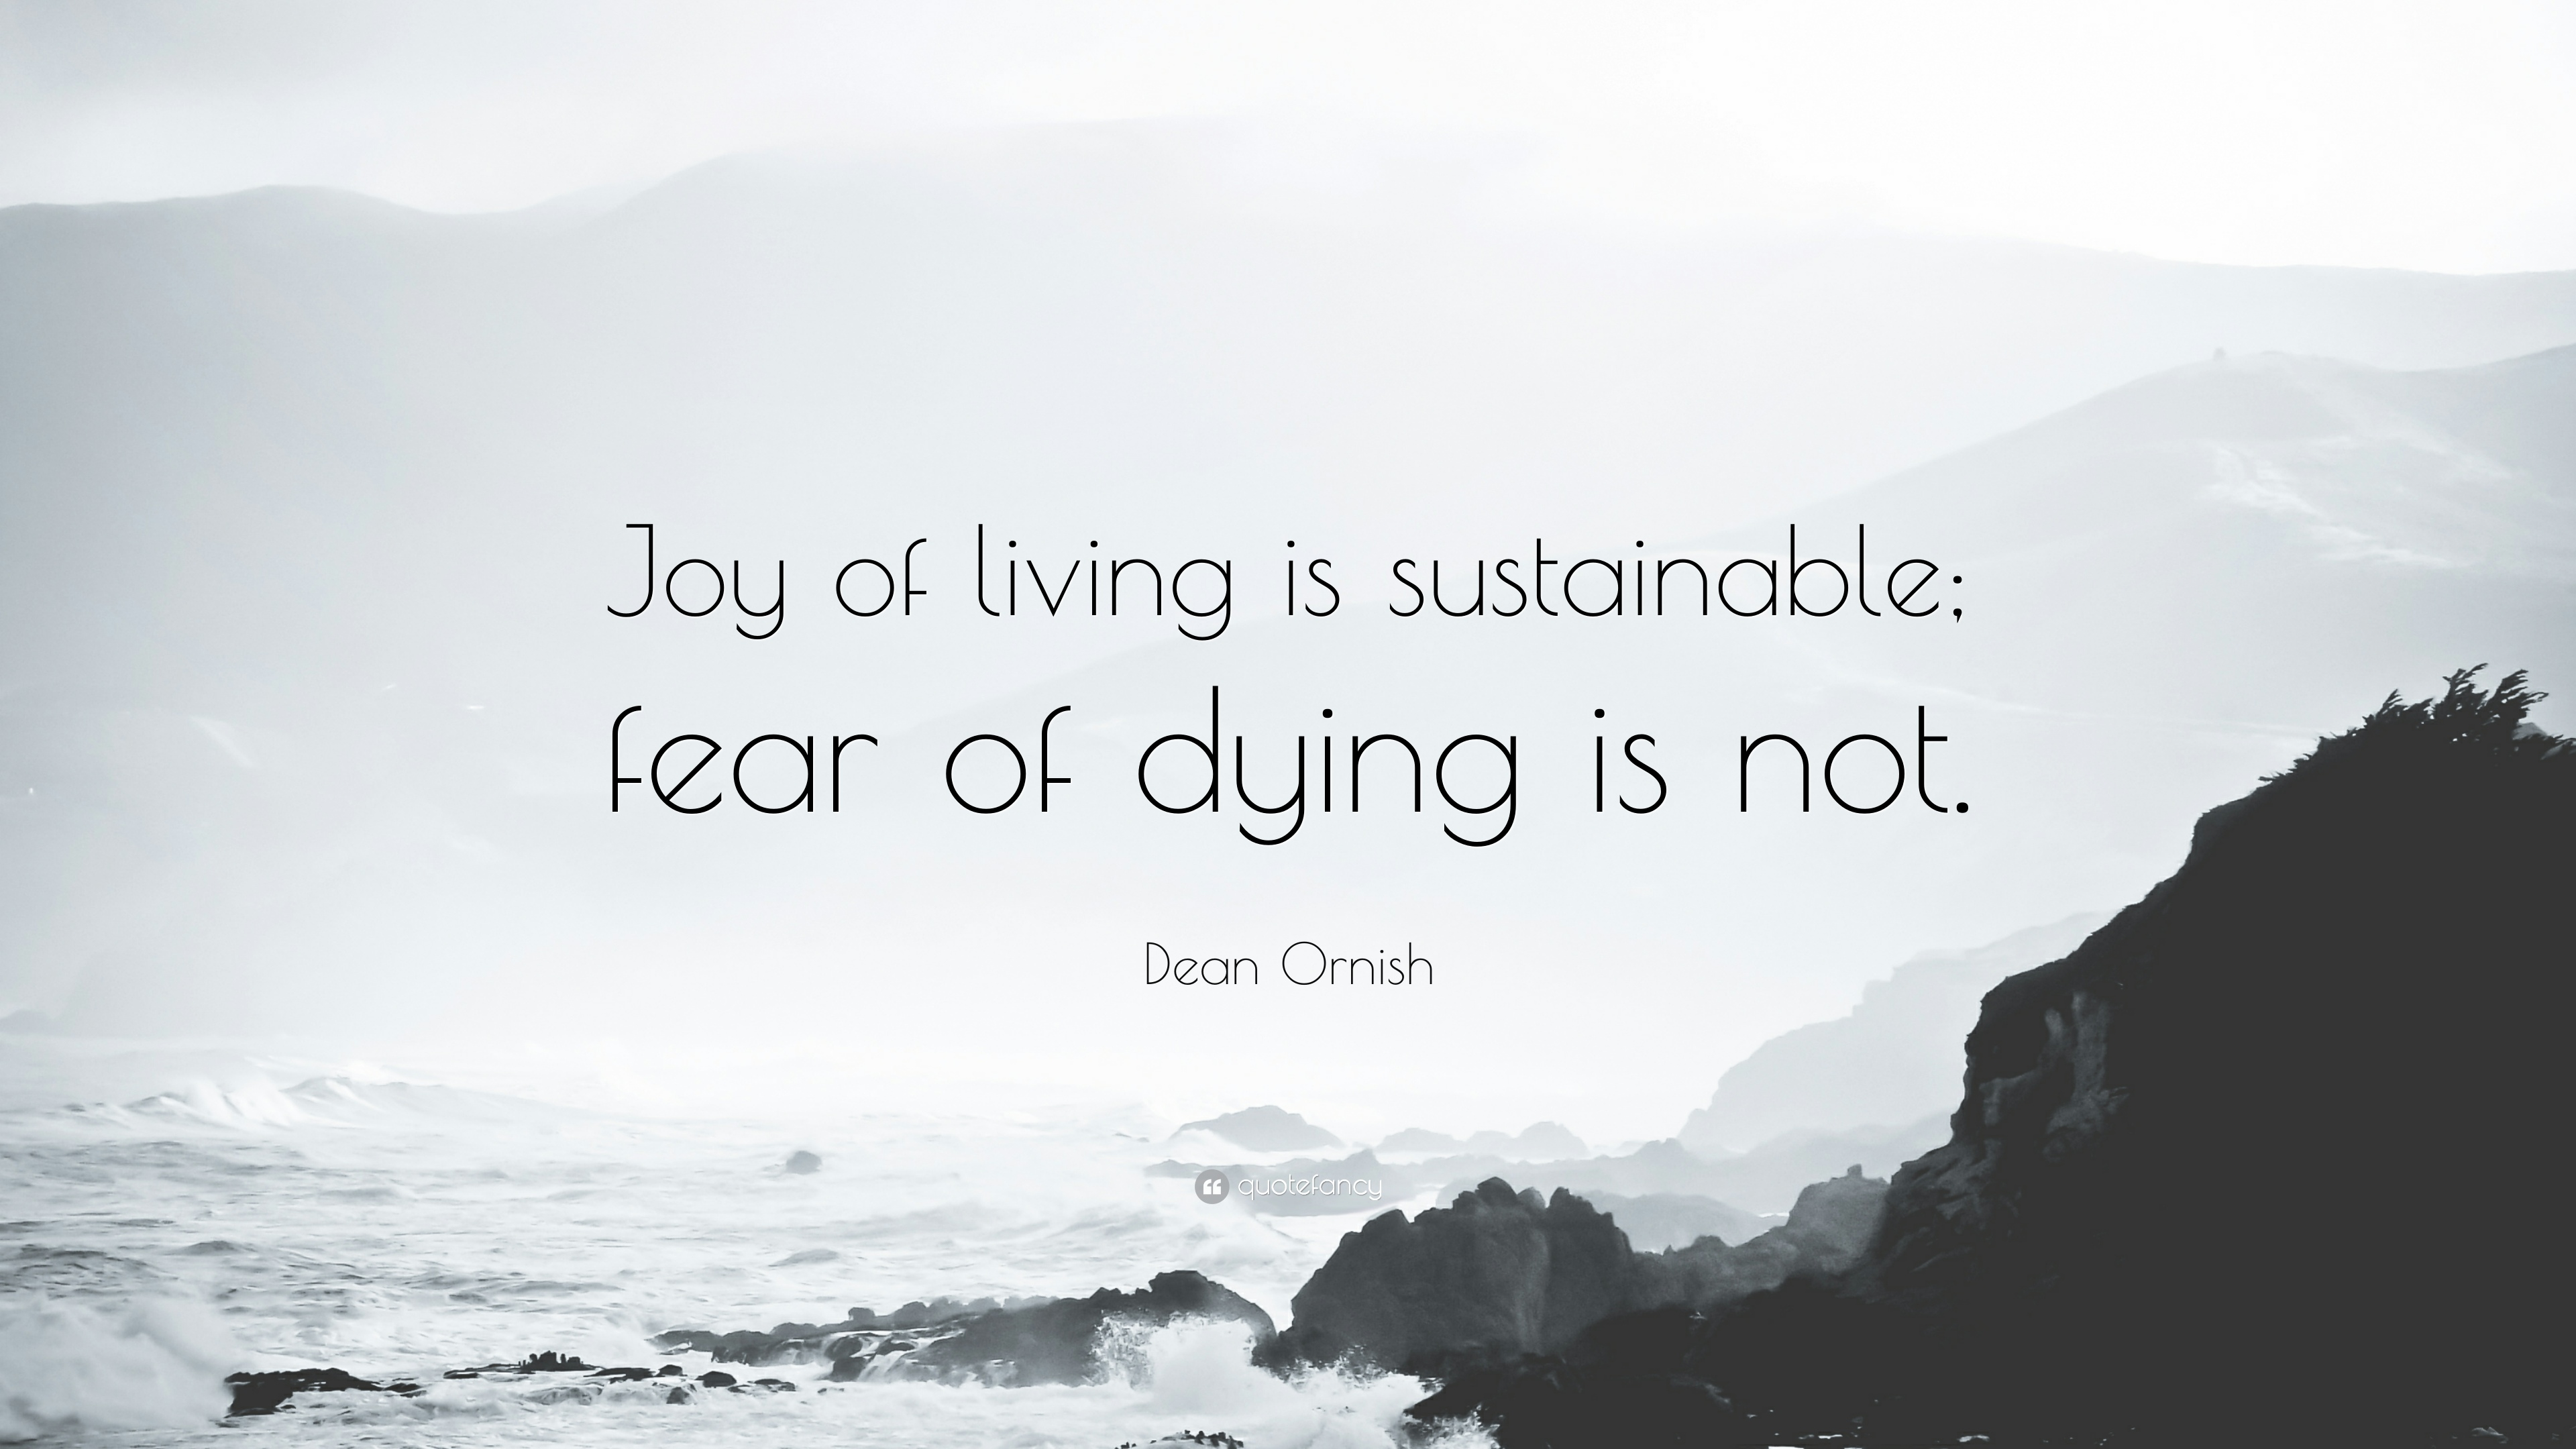 Dean Ornish Quote: U201cJoy Of Living Is Sustainable; Fear Of Dying Is Not